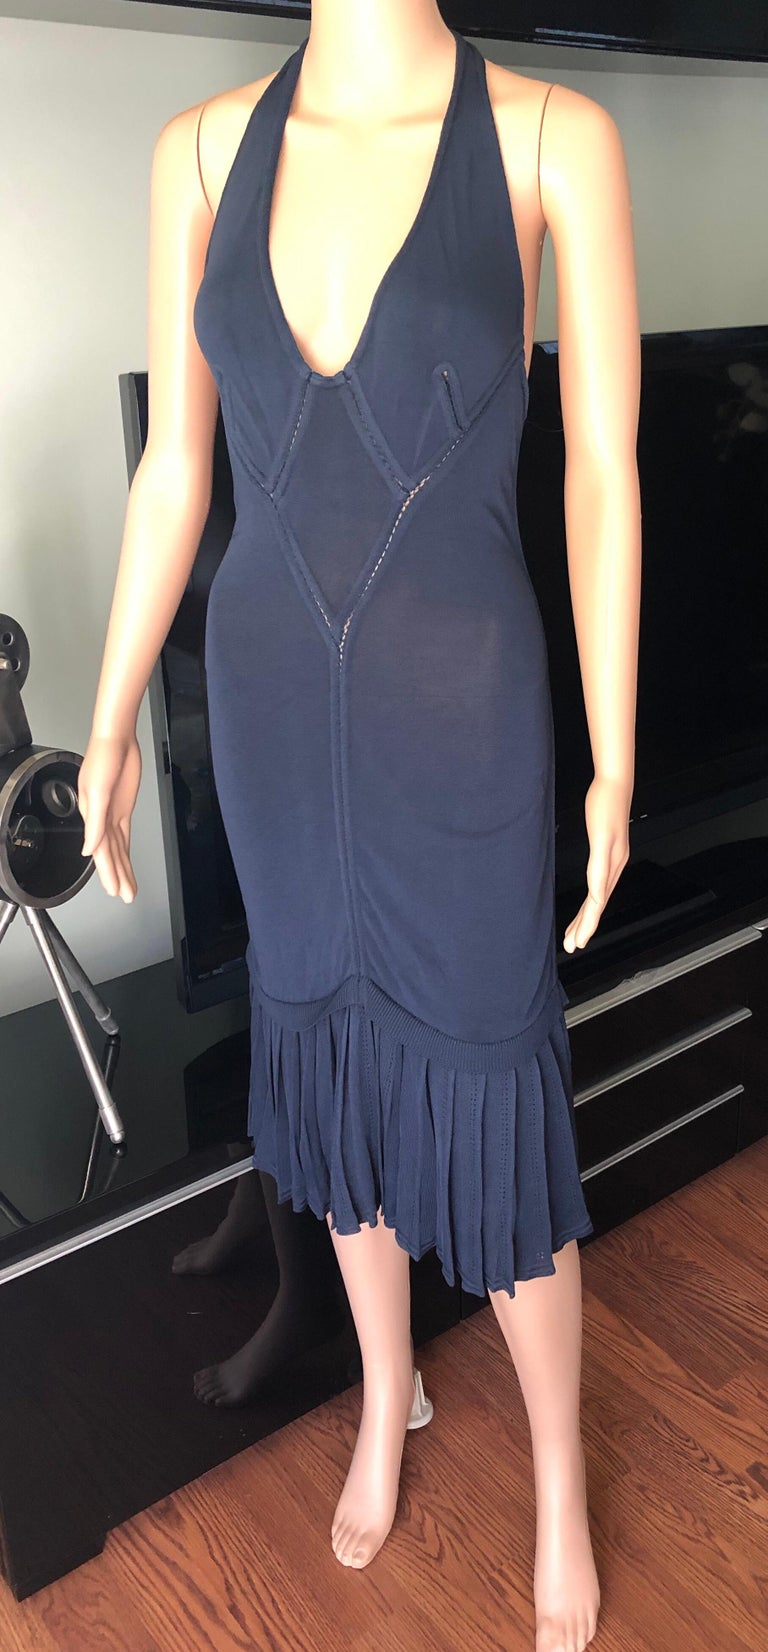 Azzedine Alaia 1990's Vintage Plunging Semi-Sheer Midi Dress Size XS  Vintage Alaia sleeveless midi dress with open knit trim throughout, plunging neckline and flared hem.